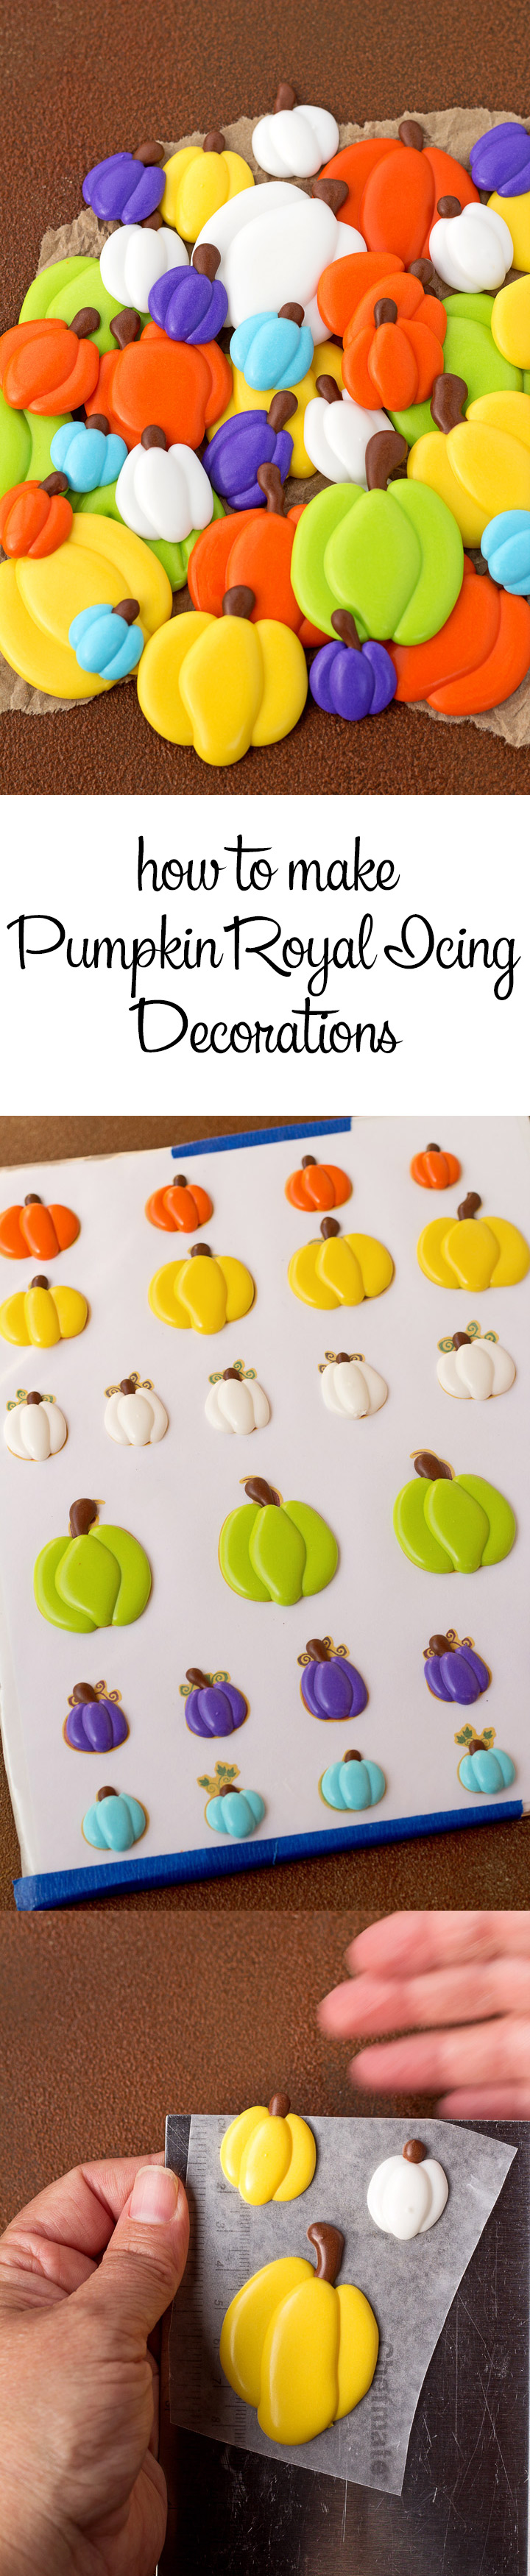 How to Make Simple Little Pumpkin Royal Icing Decorations with a How to Video | The Bearfoot Baker